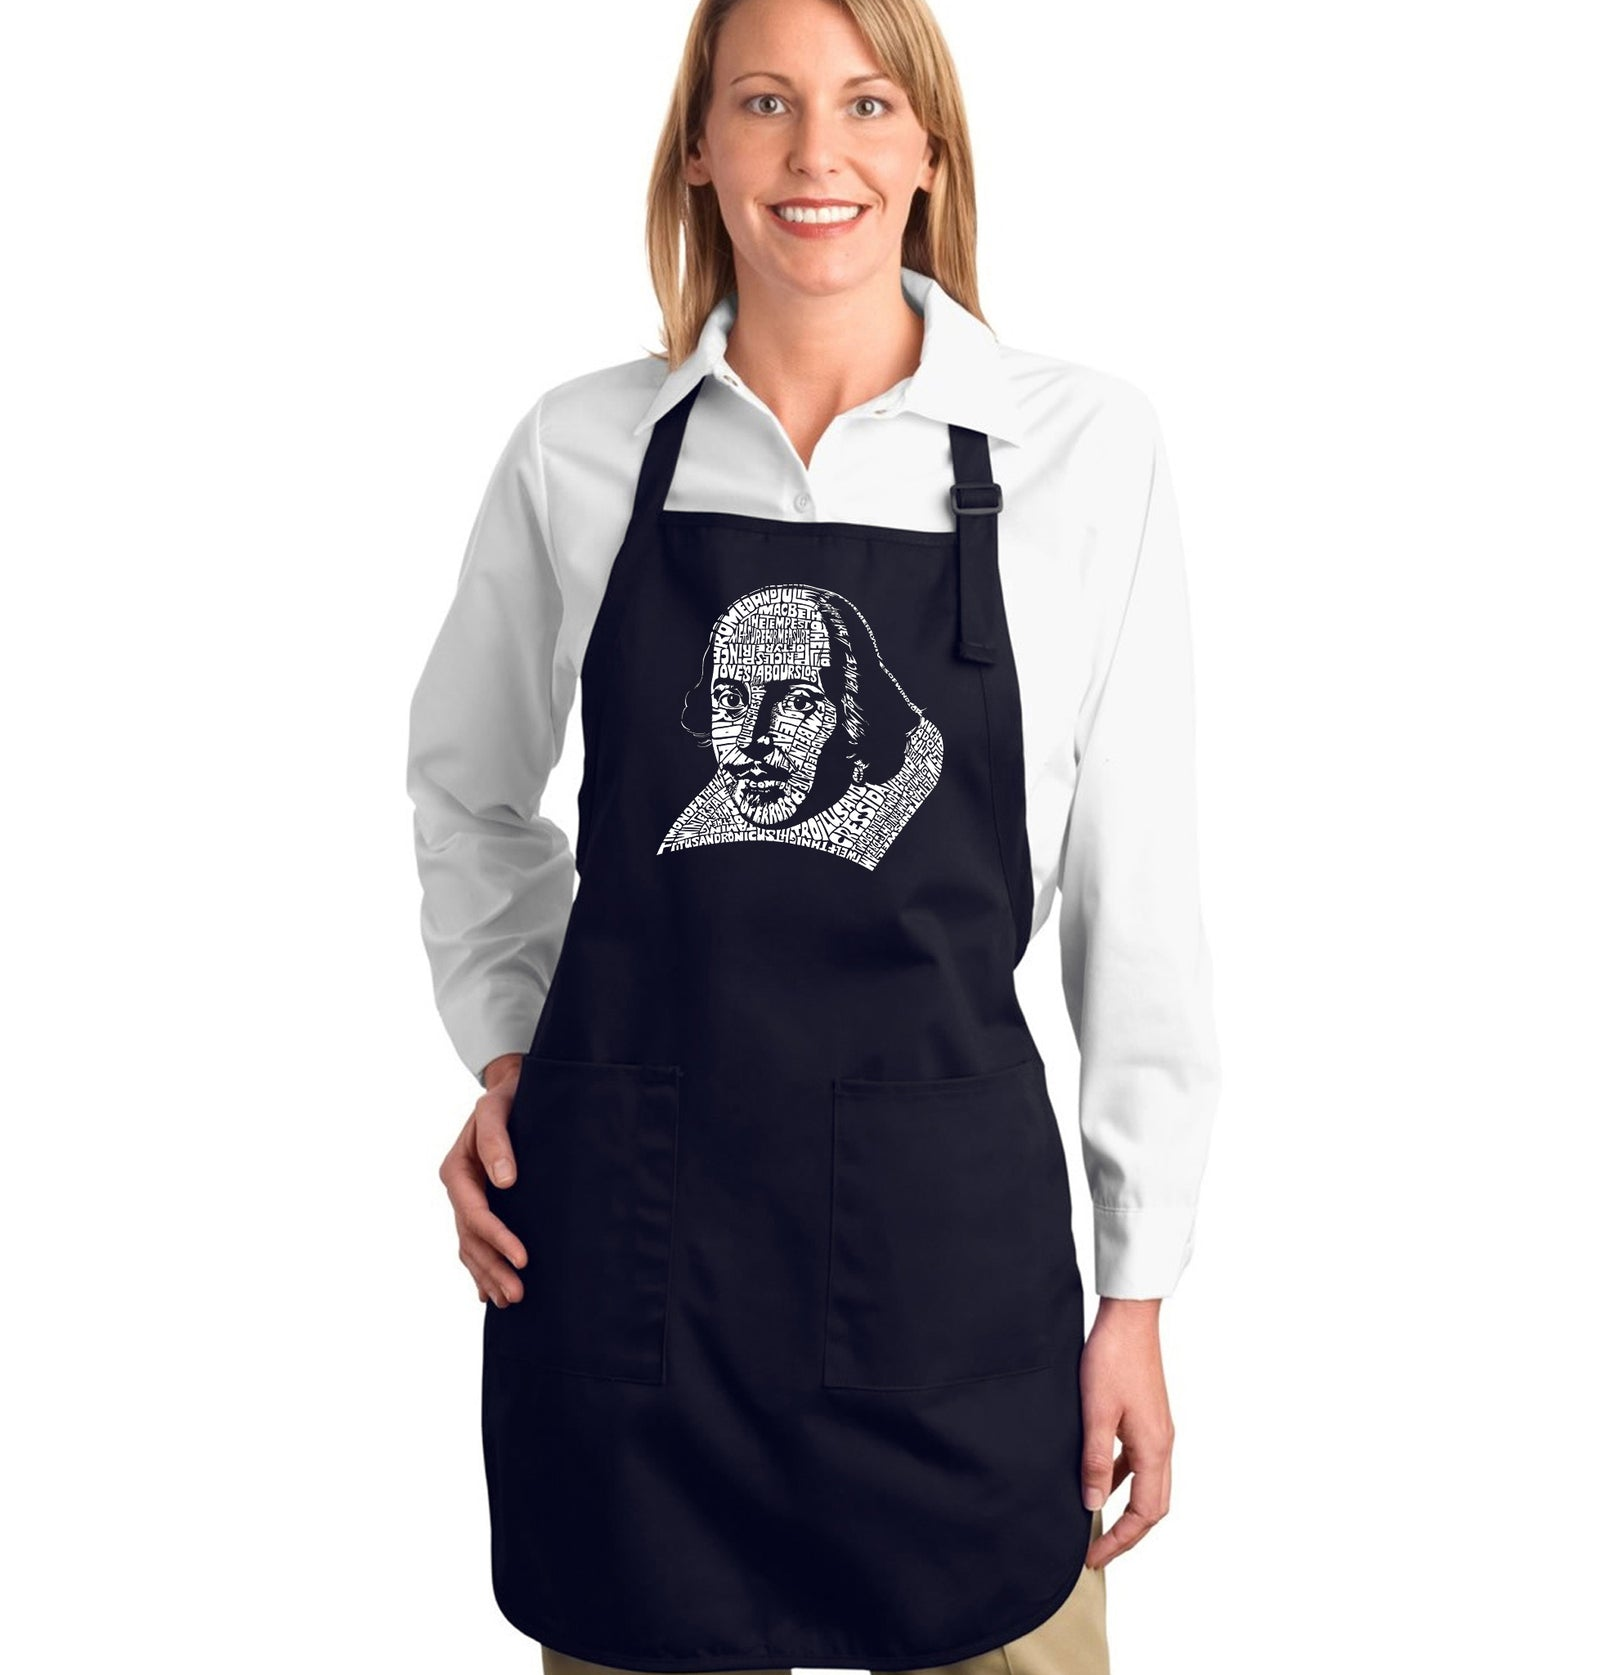 Full Length Apron - THE TITLES OF ALL OF WILLIAM SHAKESPEARE'S COMEDIES & TRAGEDIES